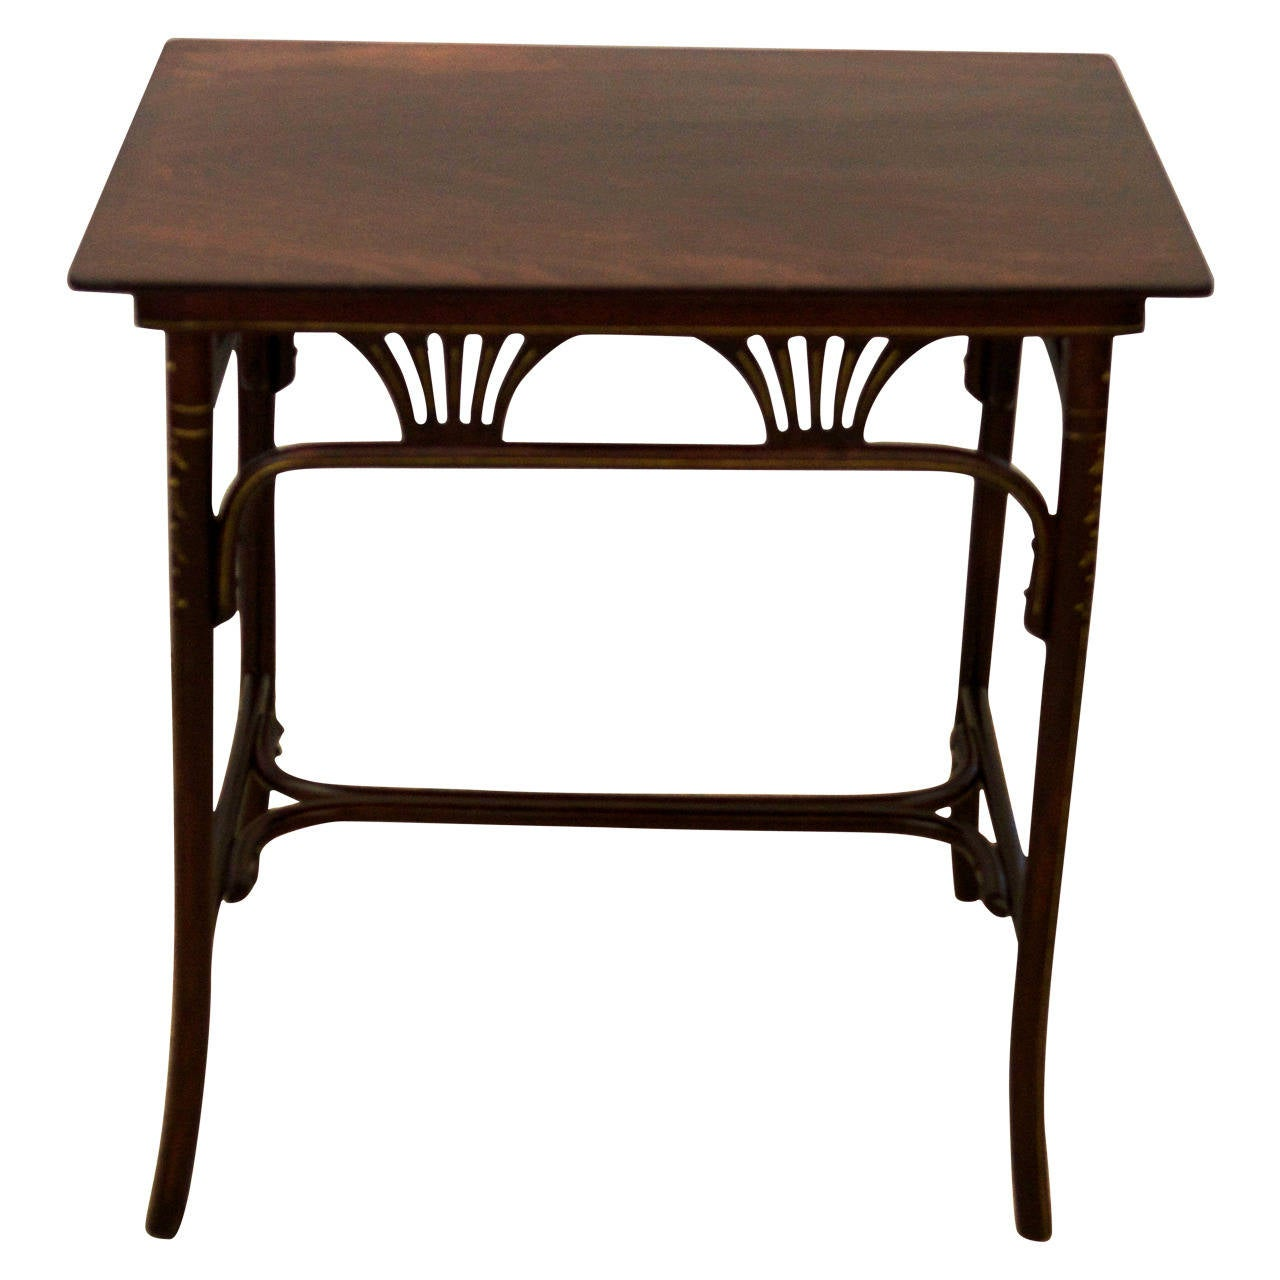 Art nouveau thonet table at 1stdibs for Table thonet